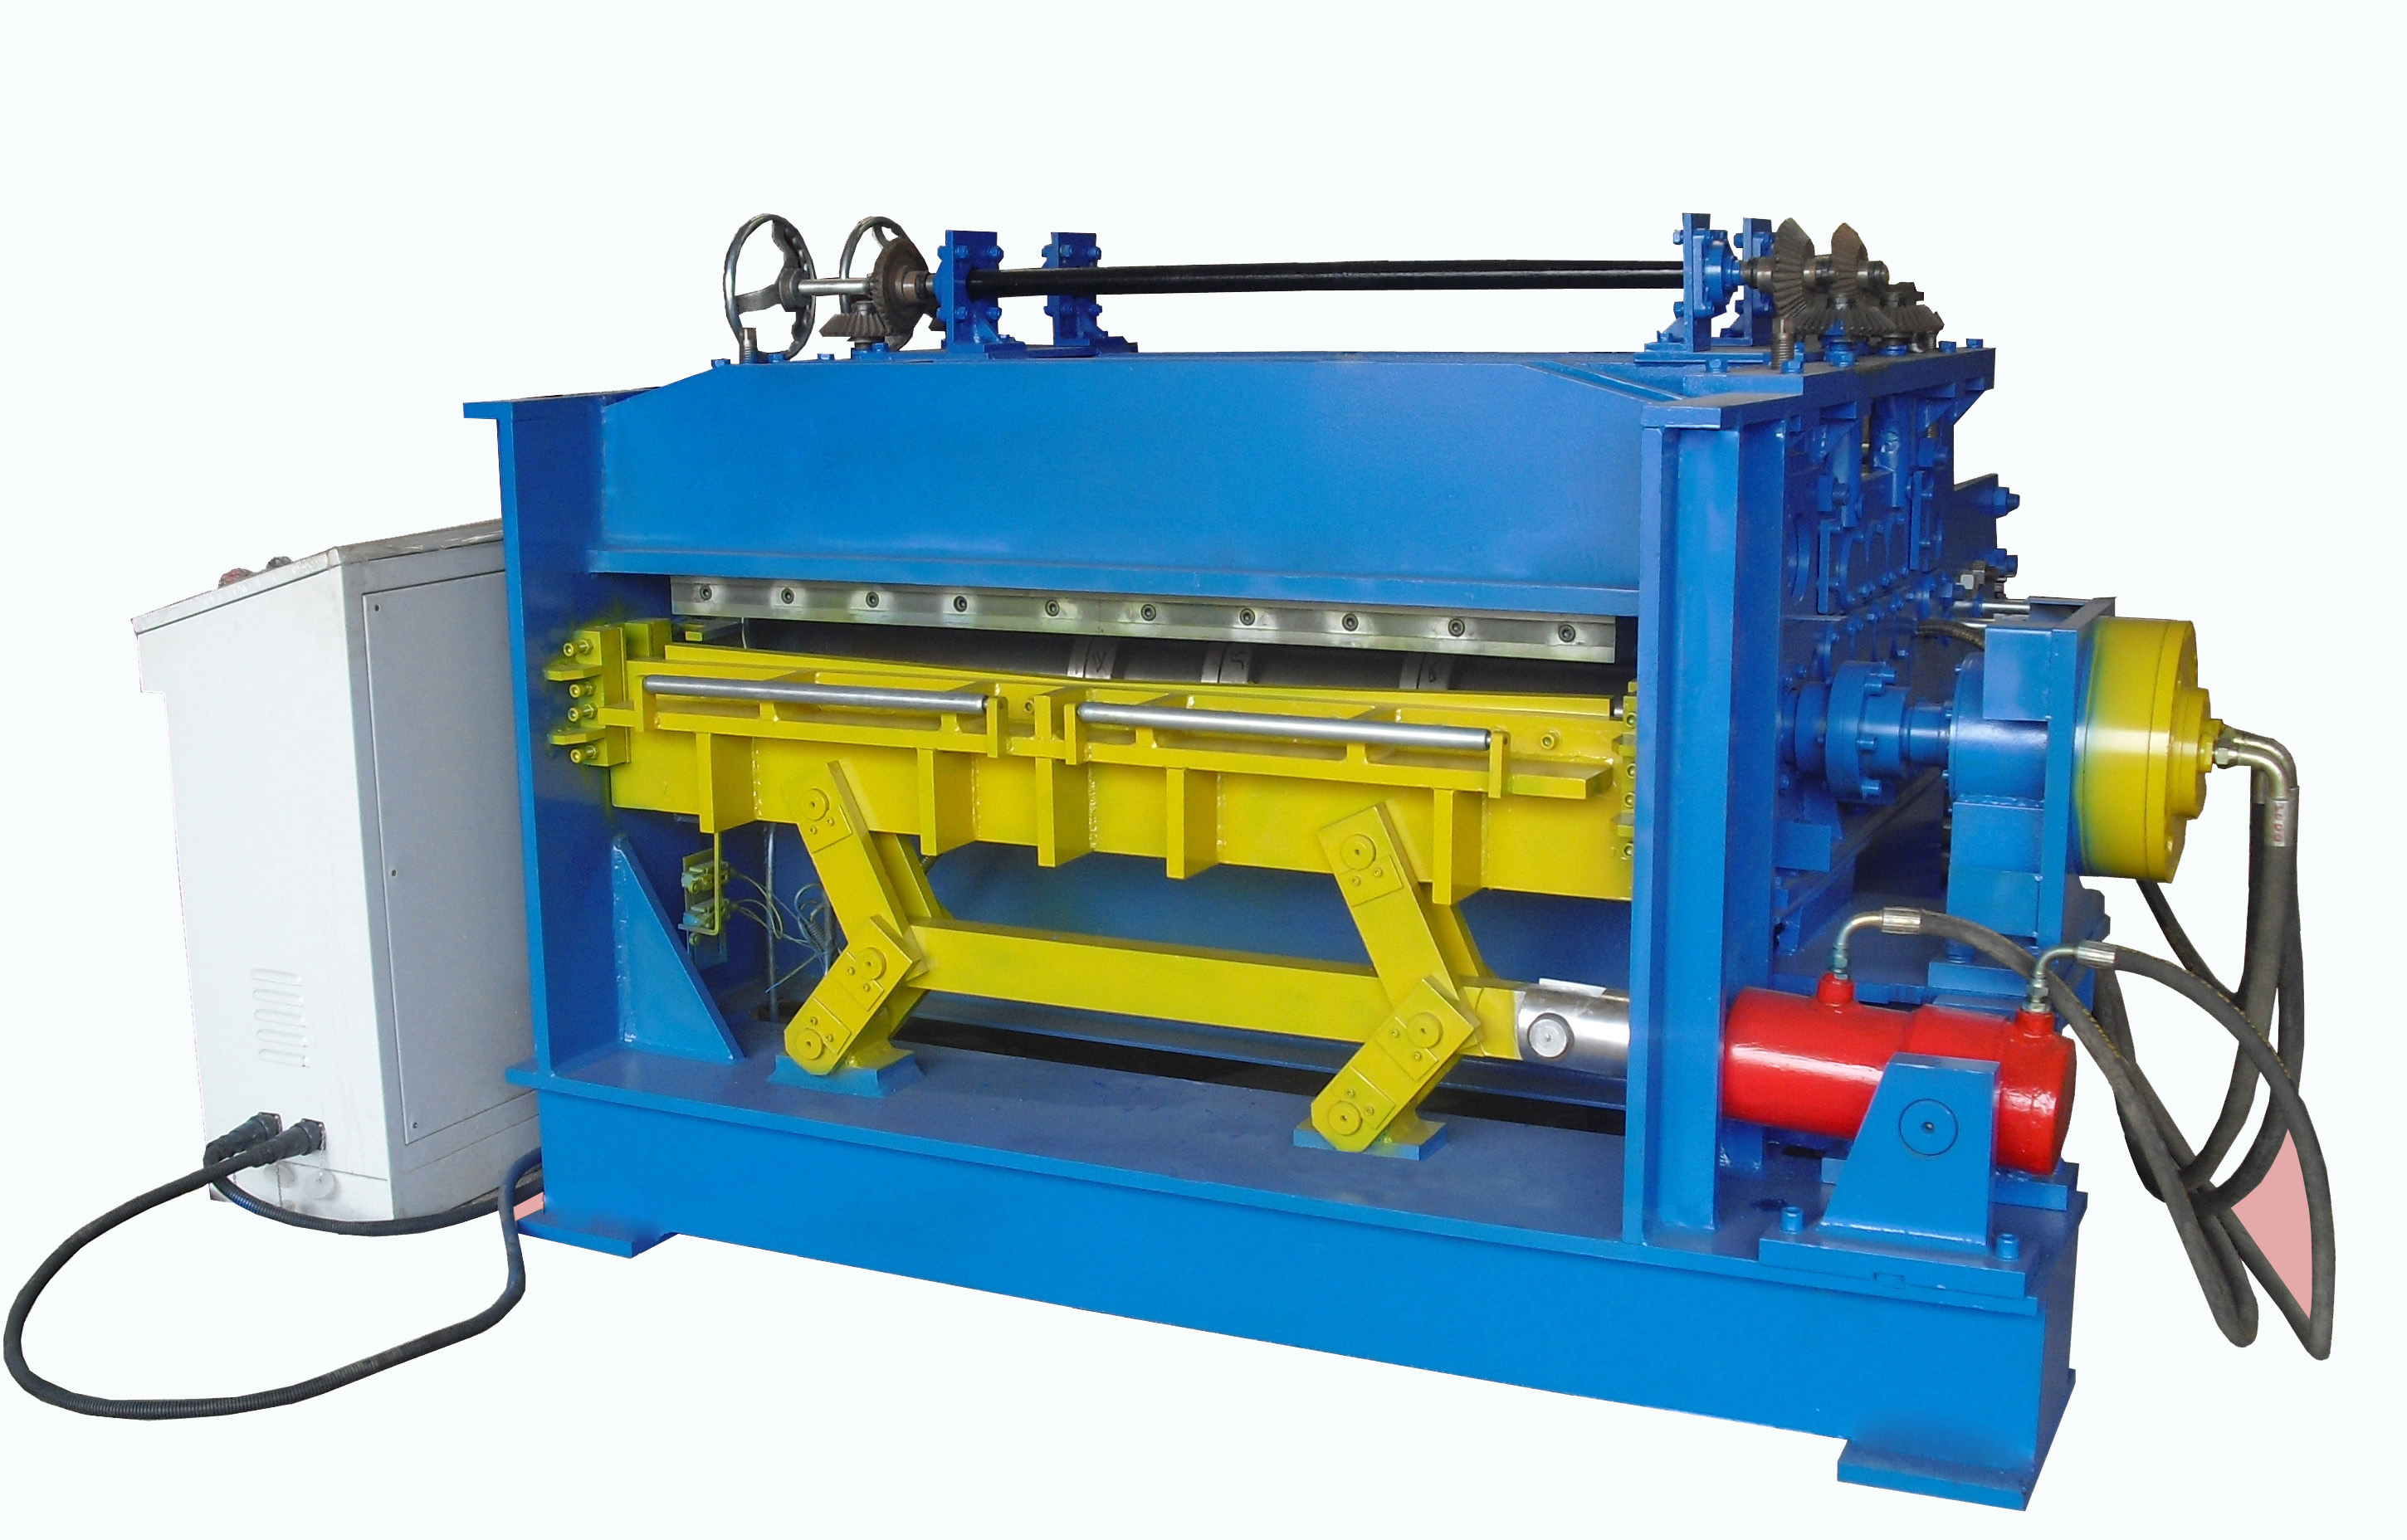 Steel Plate Straightening Machines with Slitting and Cutting Device Fcs2.0-1300